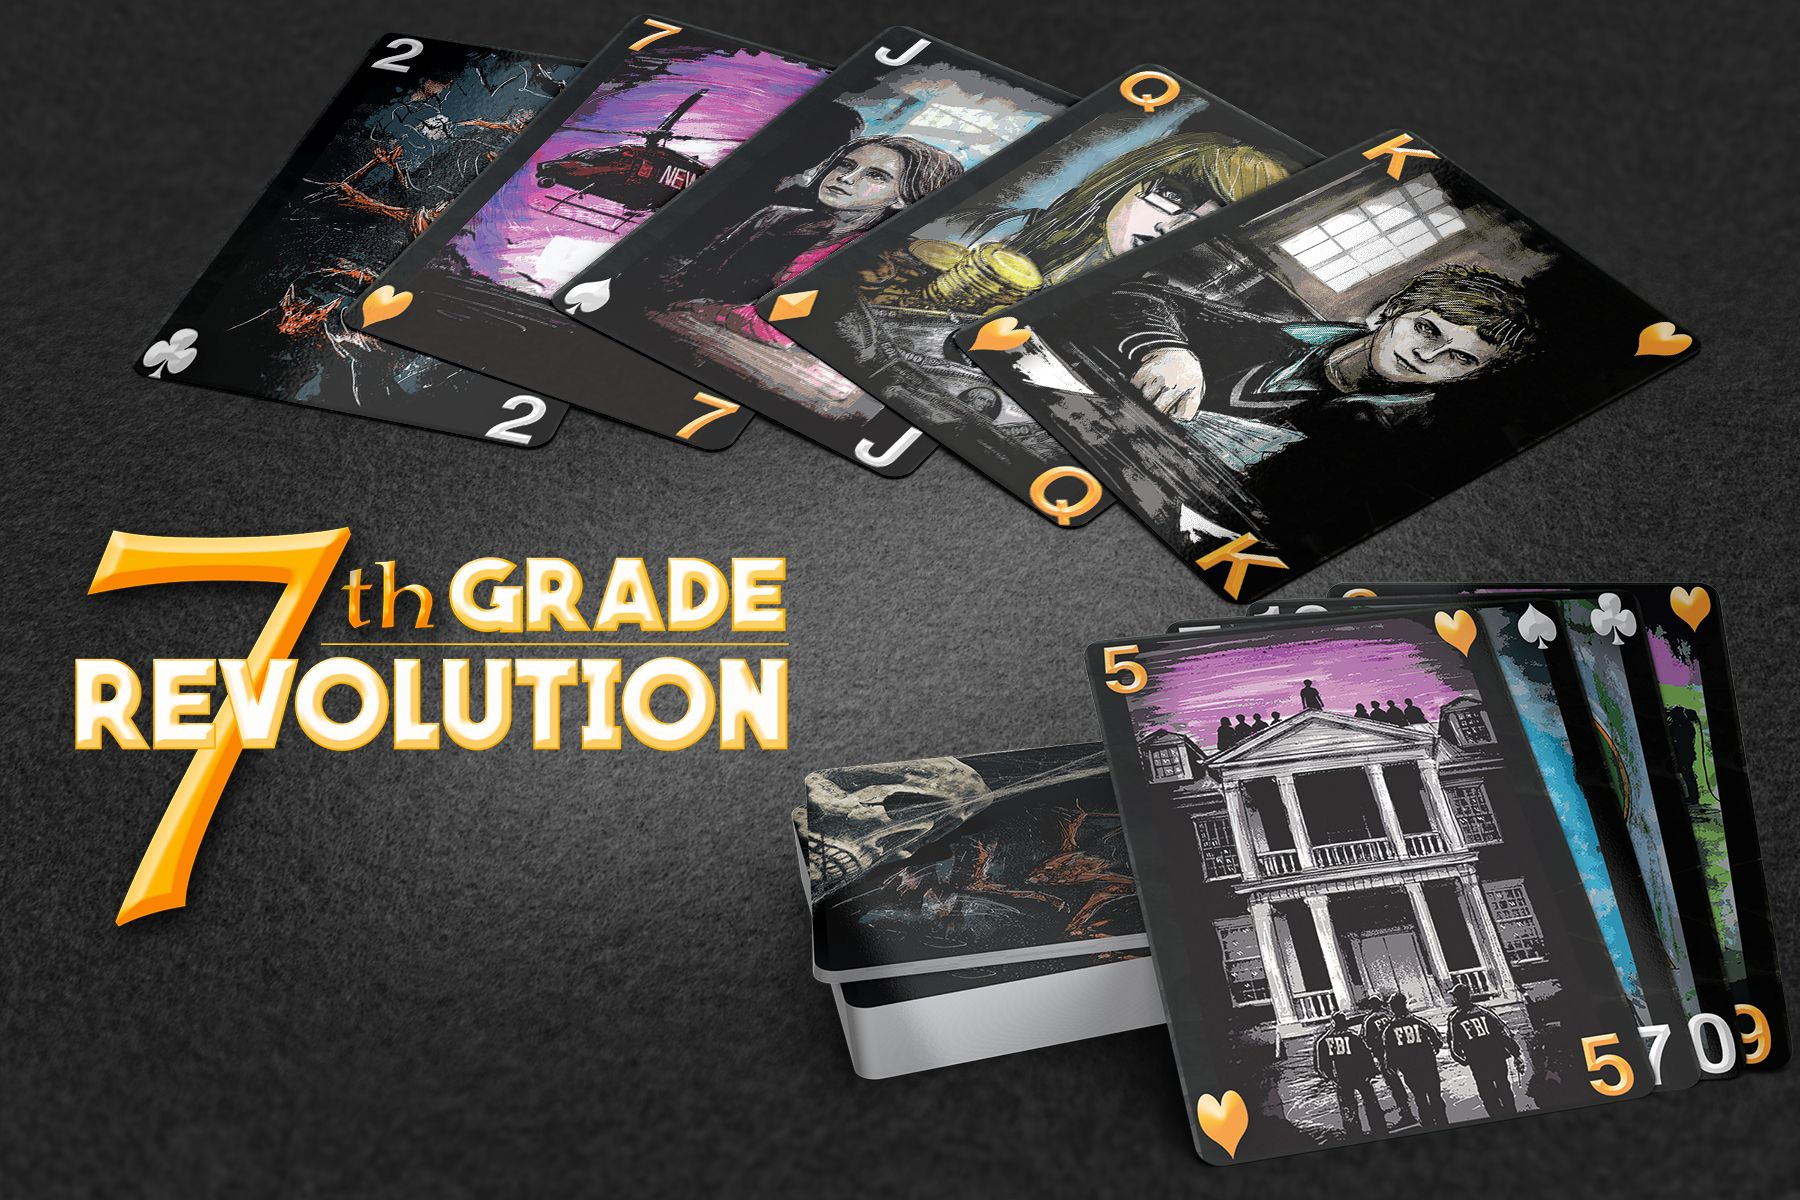 7th Grade Revolution Playing Cards Playing card deck